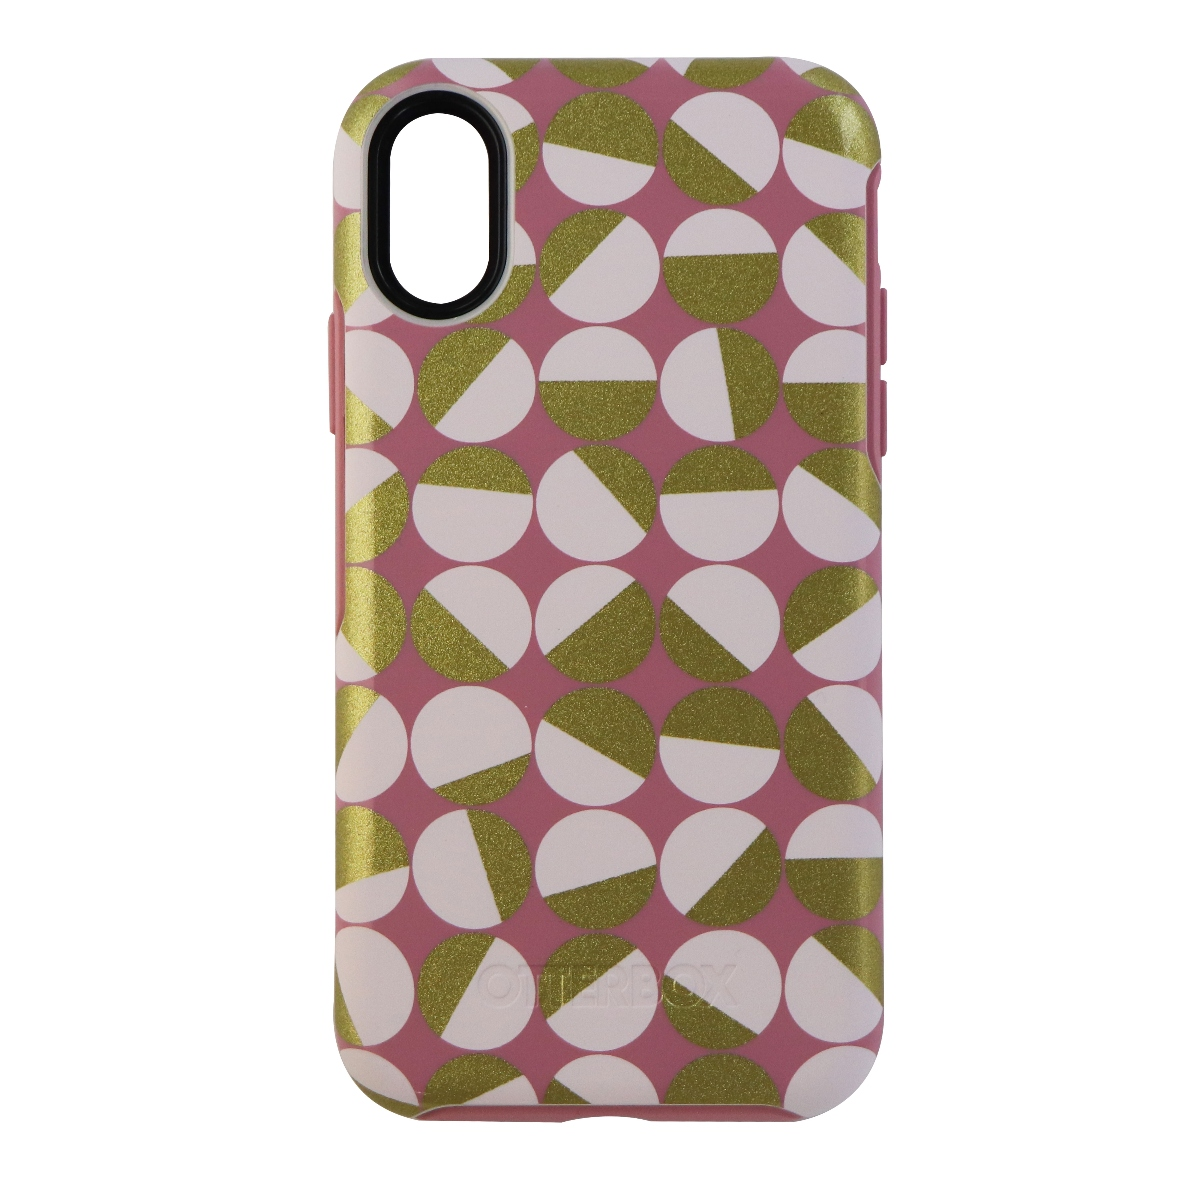 OtterBox Symmetry Series Hybrid Case for Apple iPhone X 10 - Pink Gold White